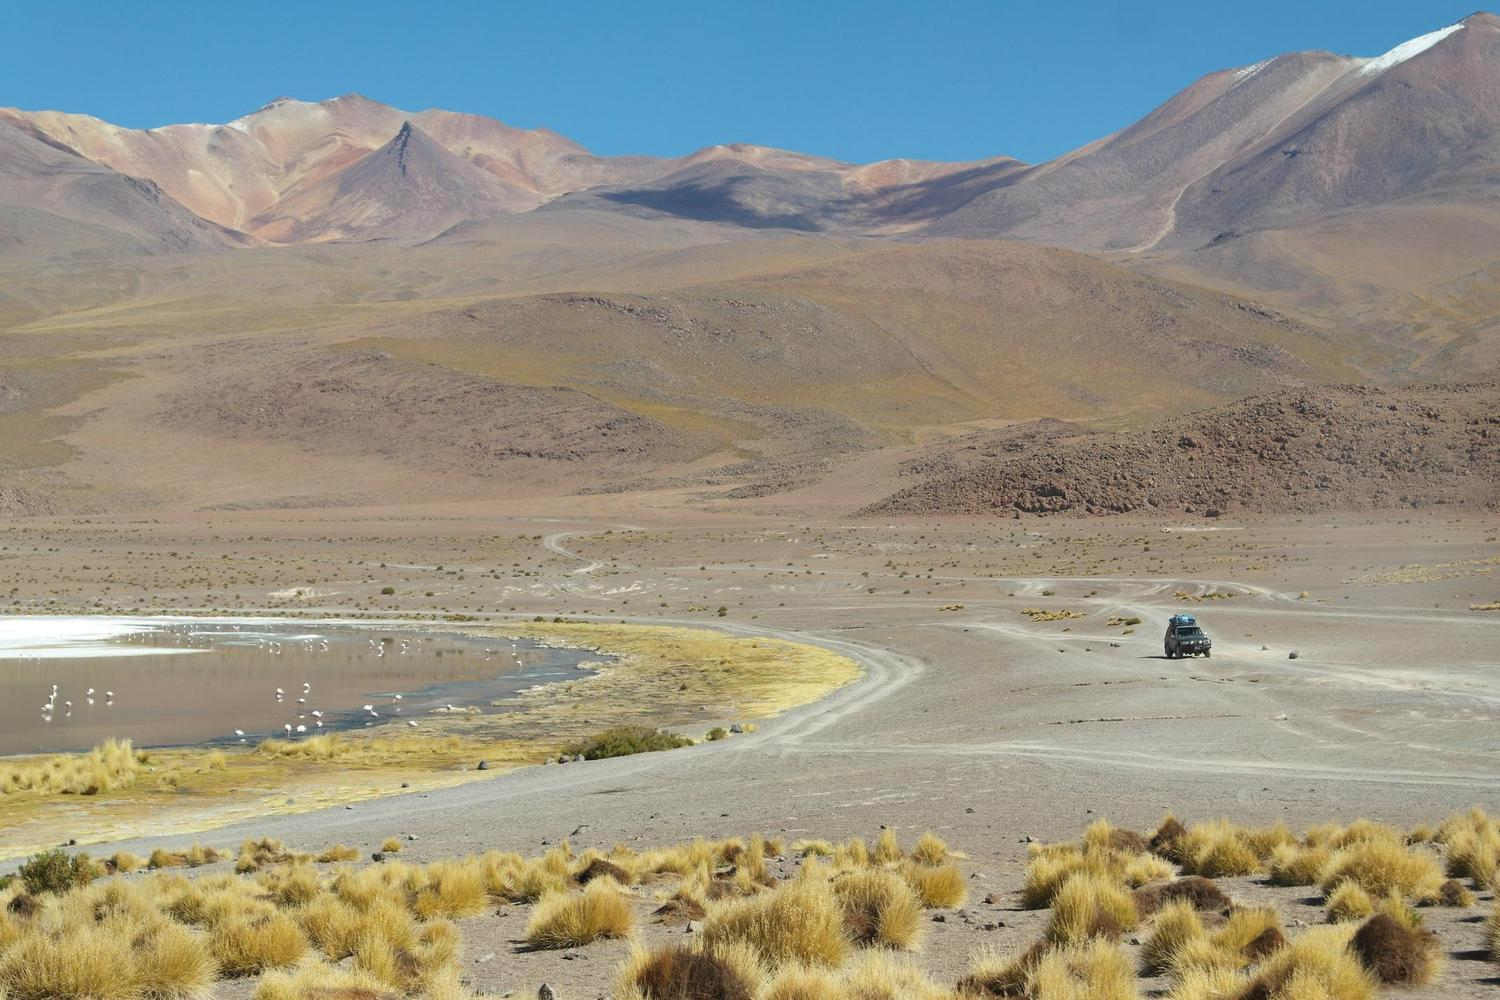 Crossing the Bolivian altiplano by jeep